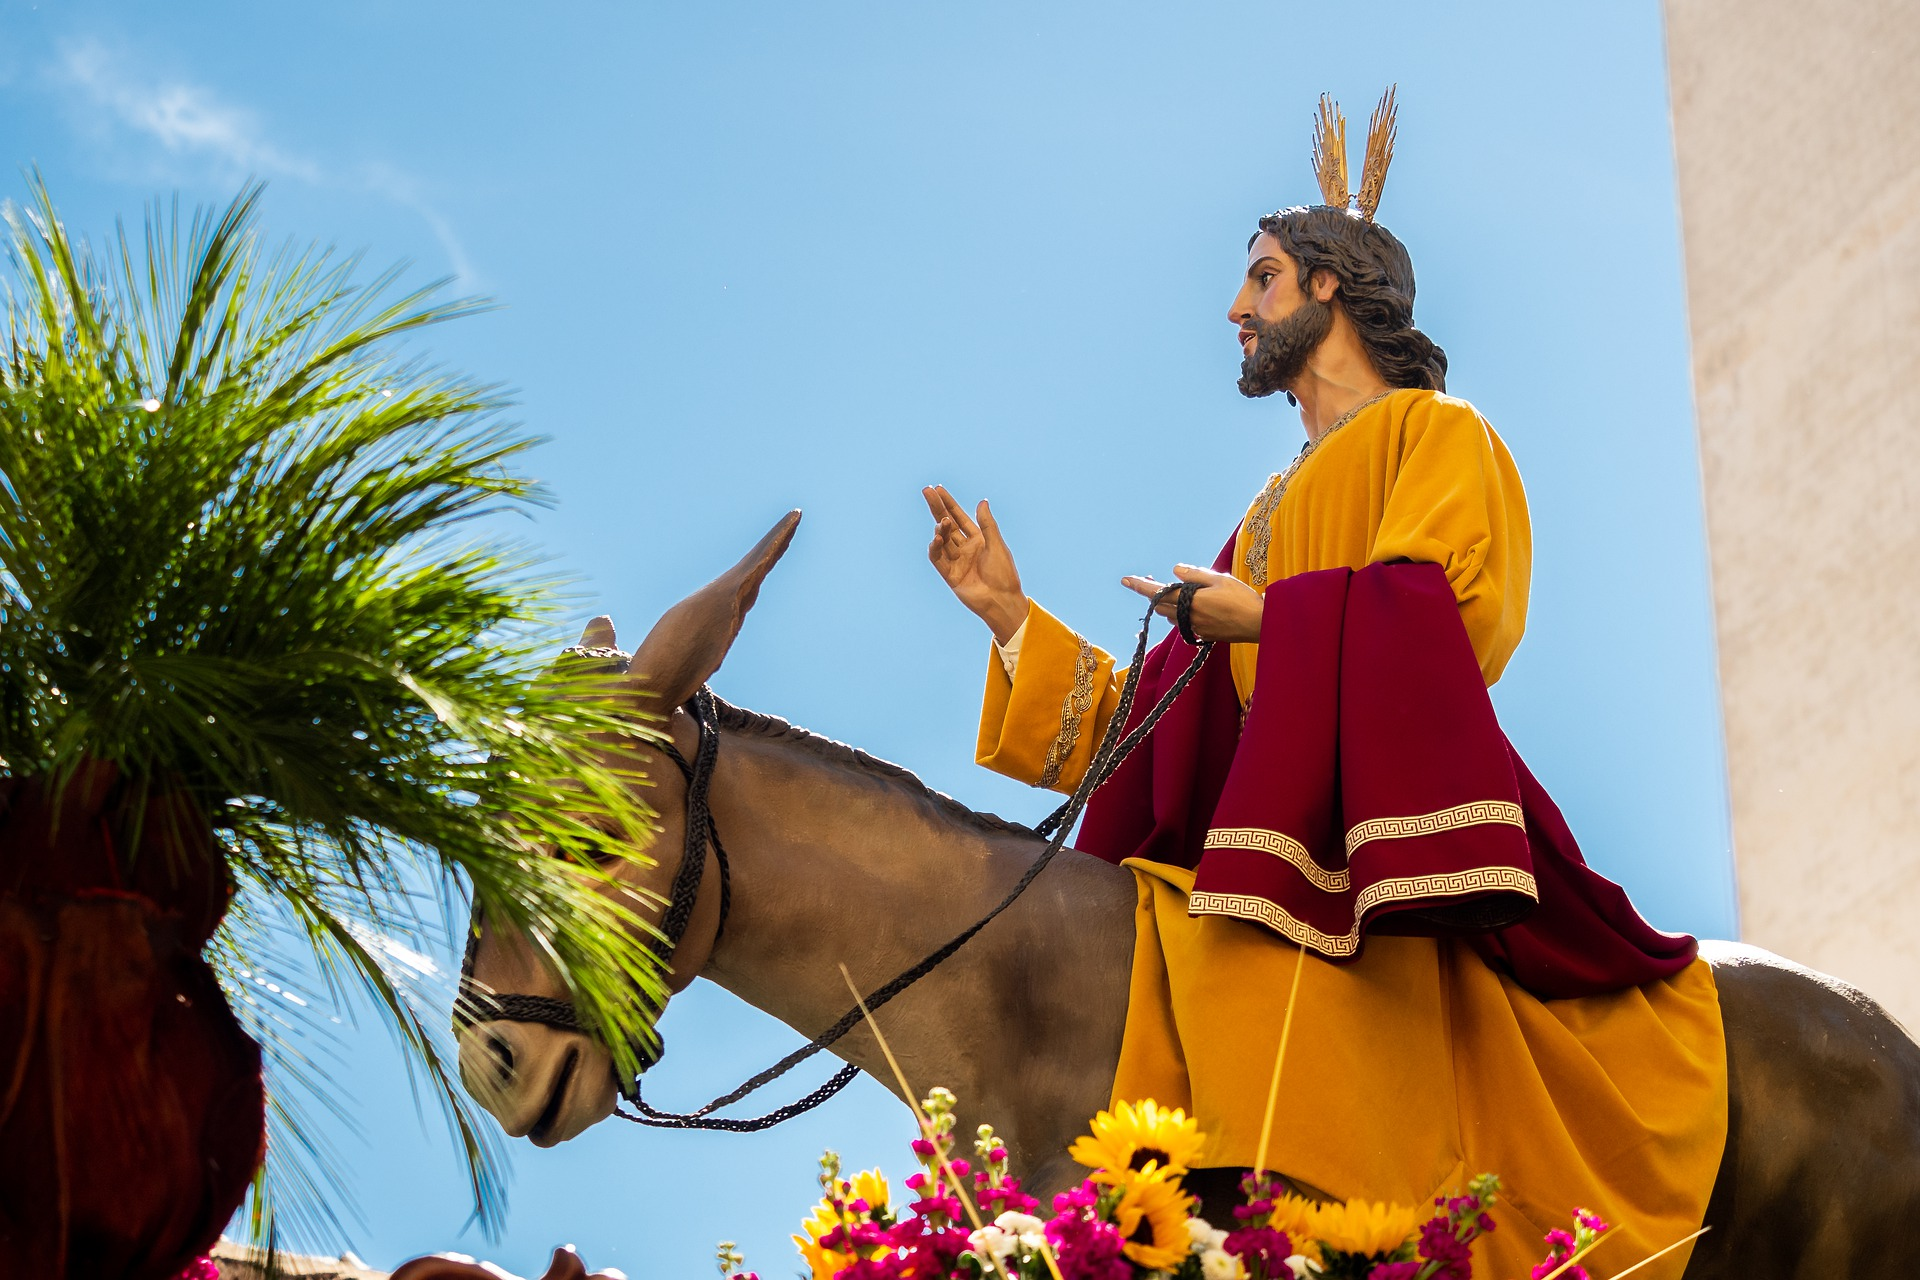 6th Sunday of Lent: Everyone Loves a Parade